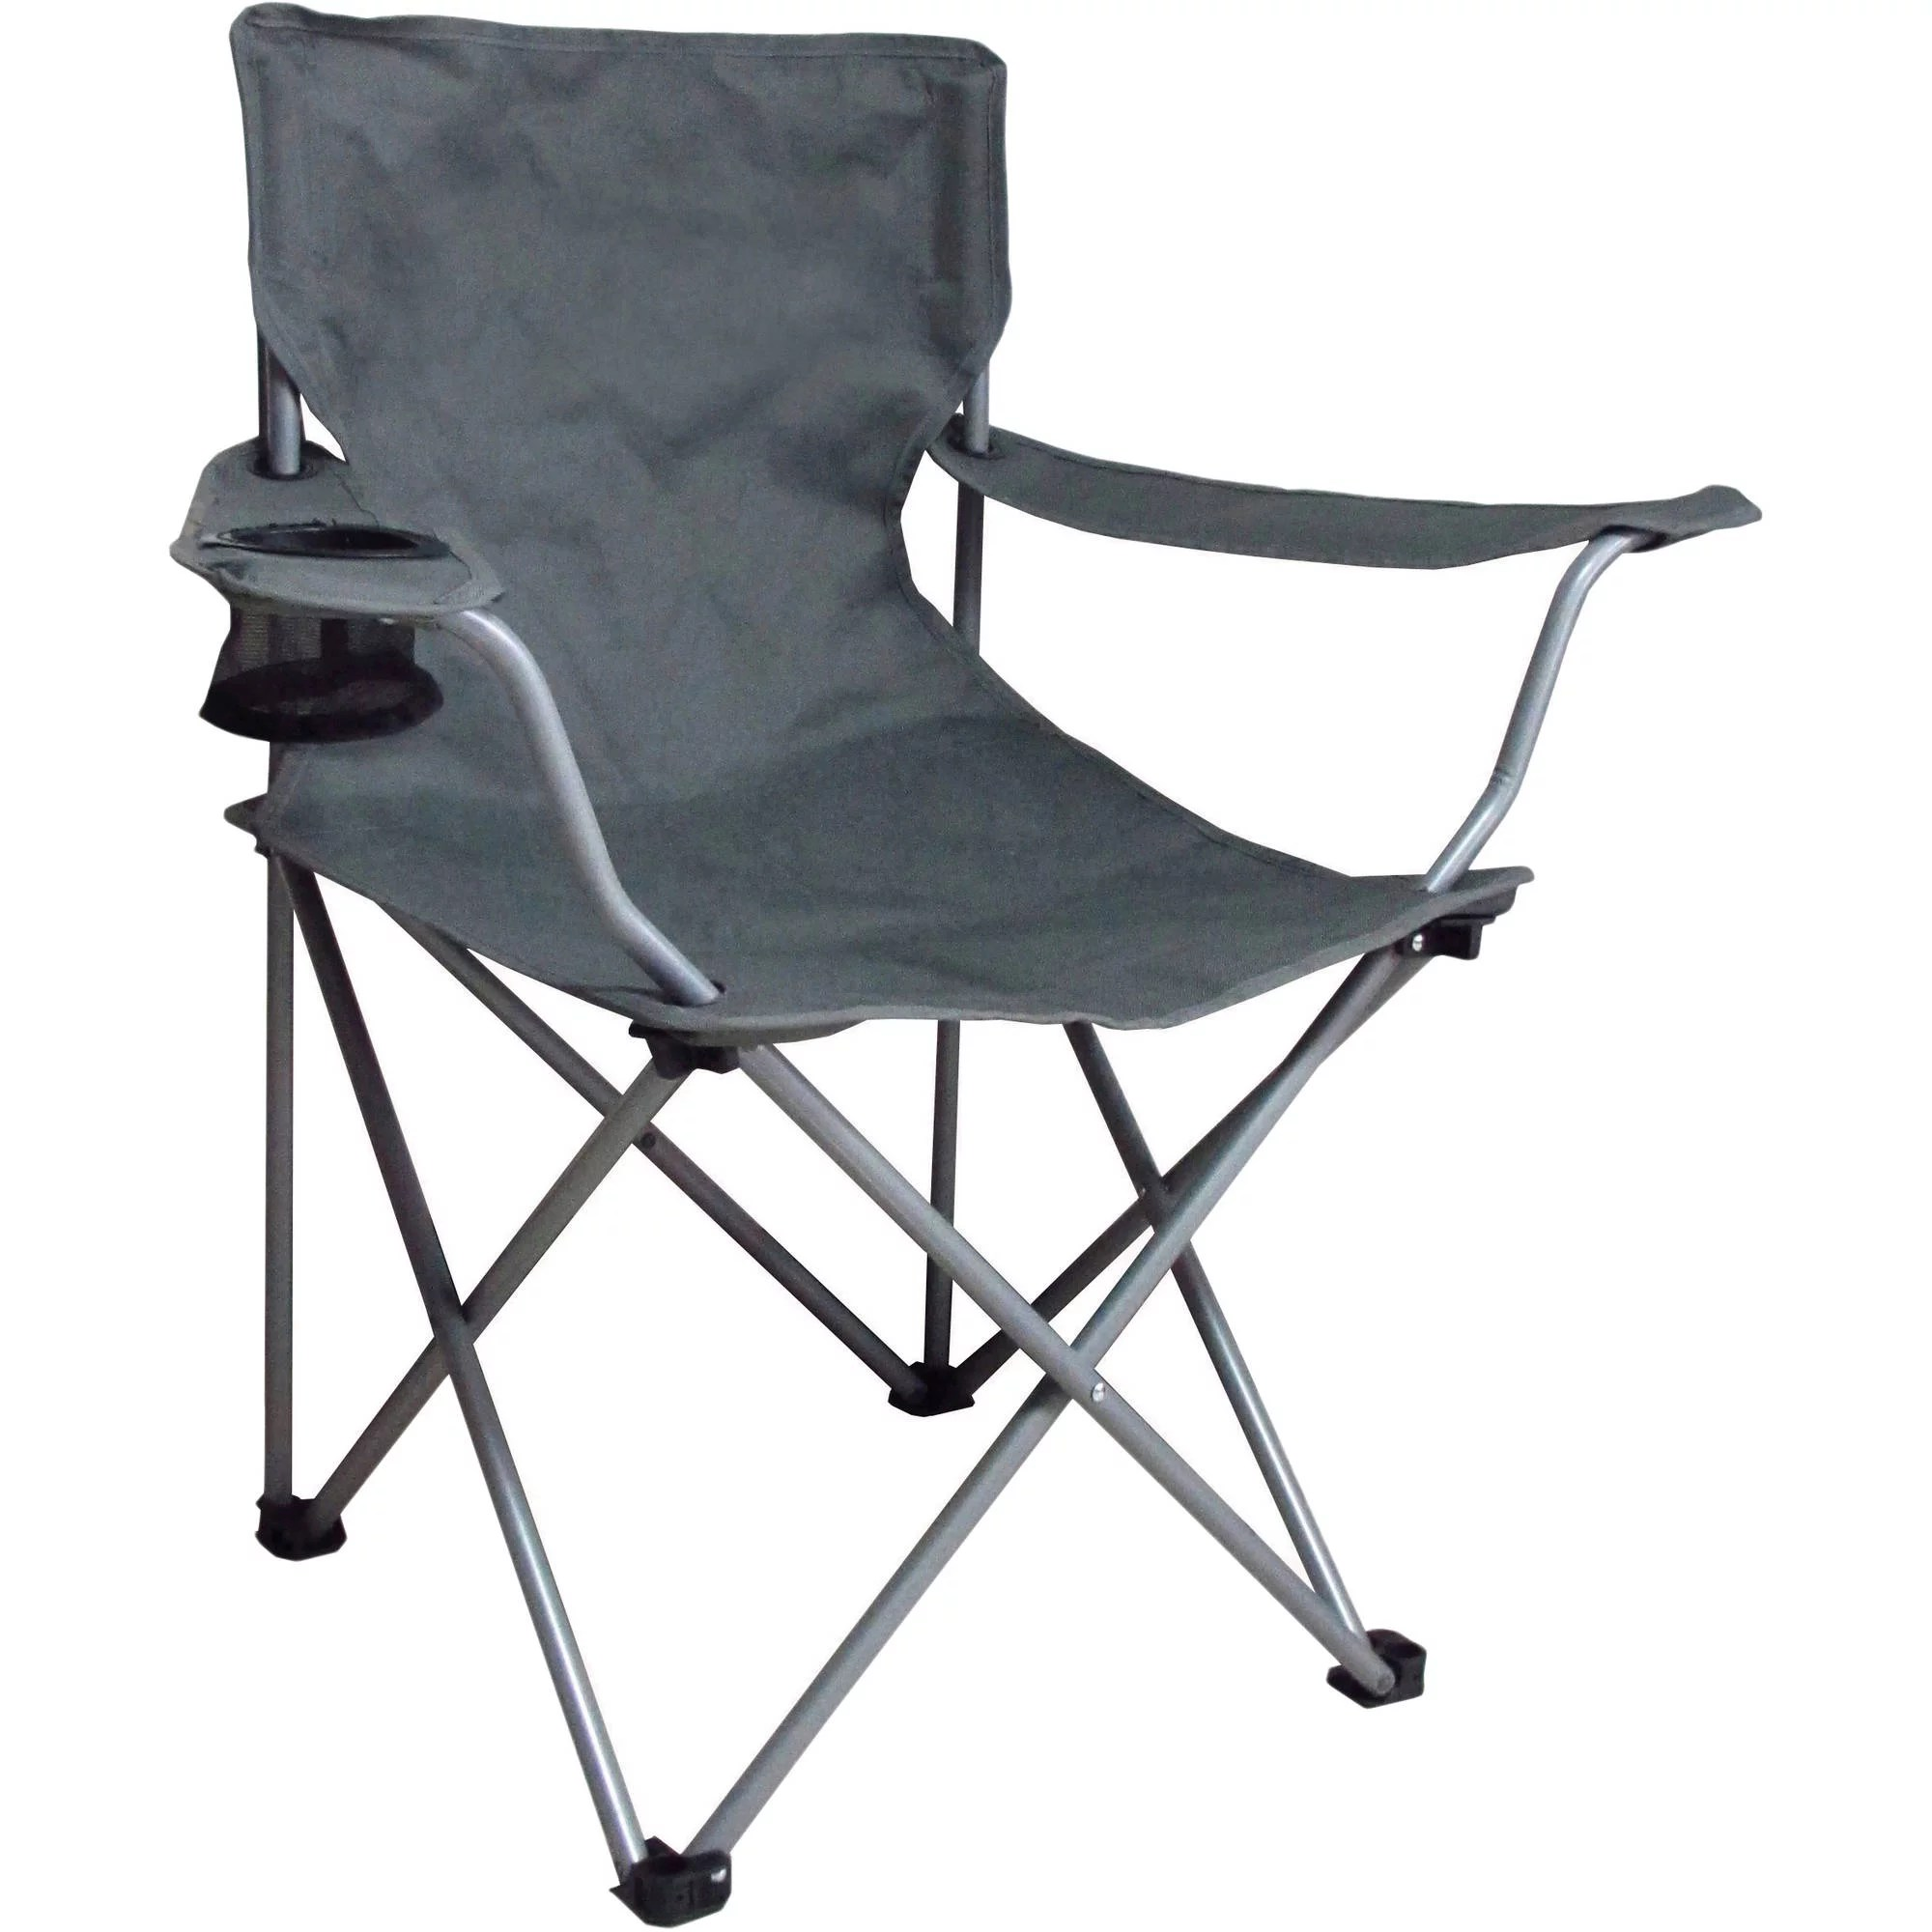 Collapsible Chair Ozark Trail Folding Chair